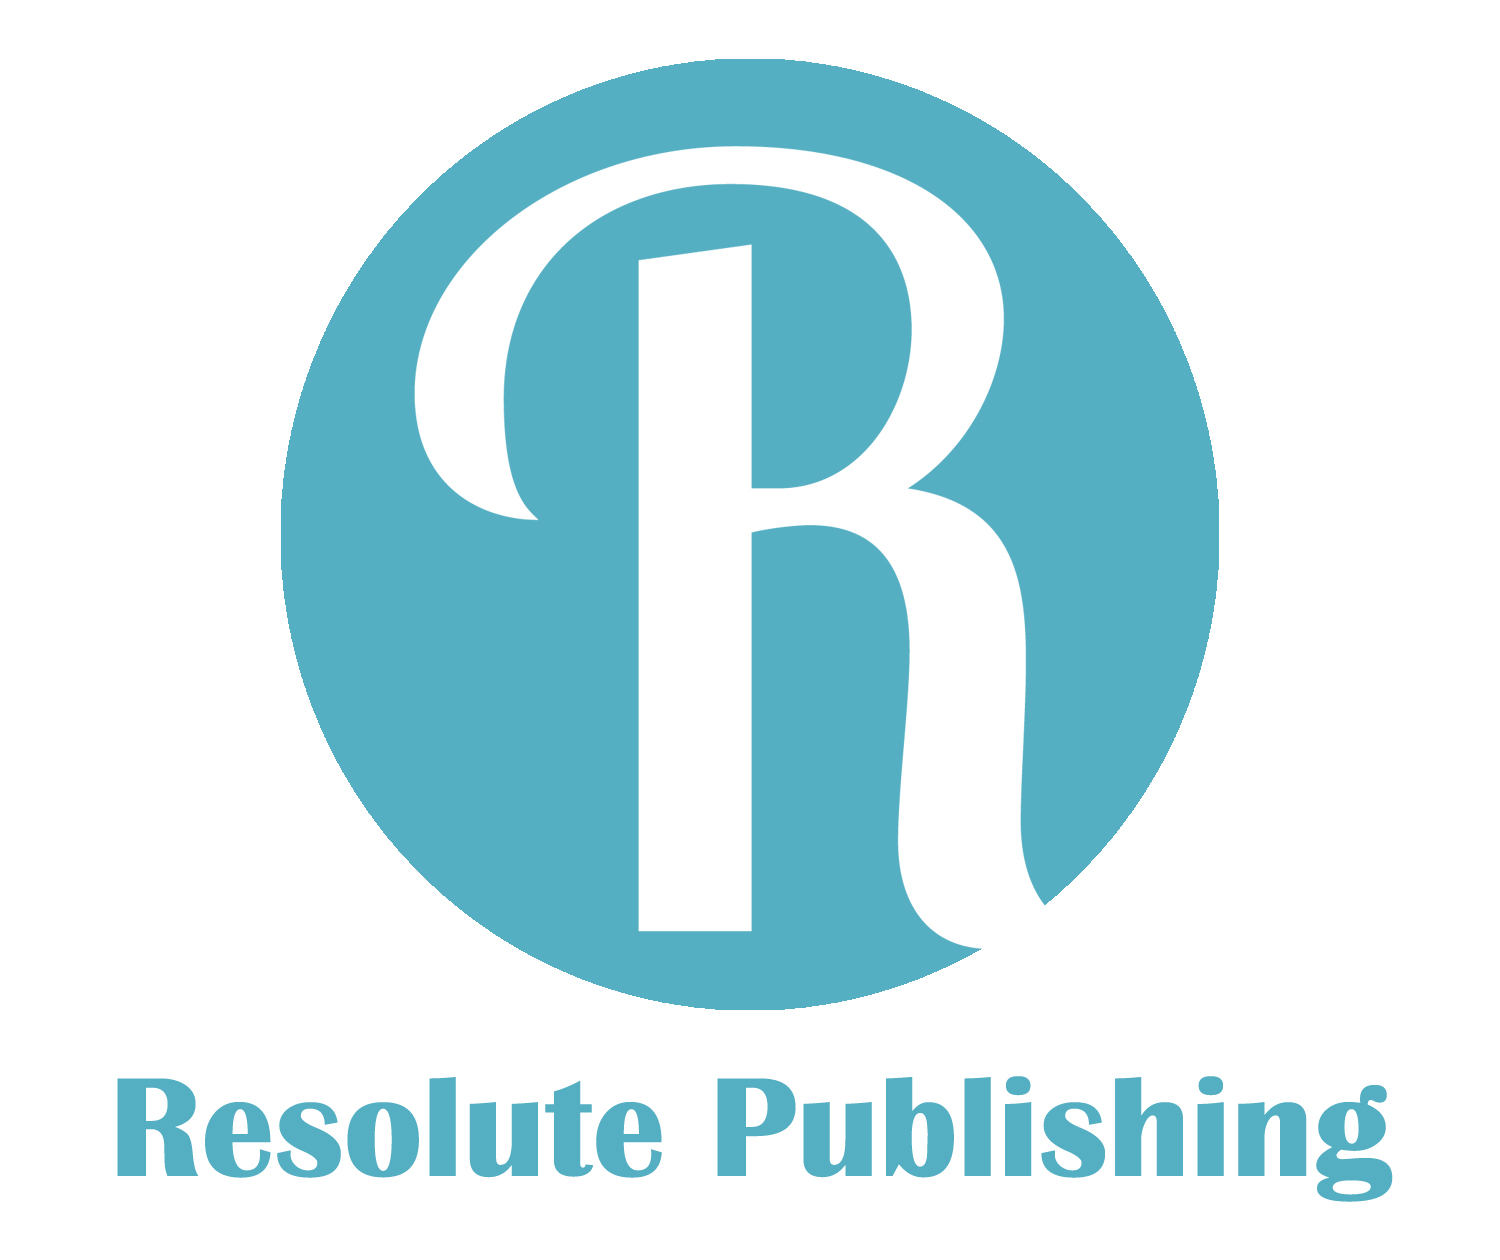 Resolute Publishing